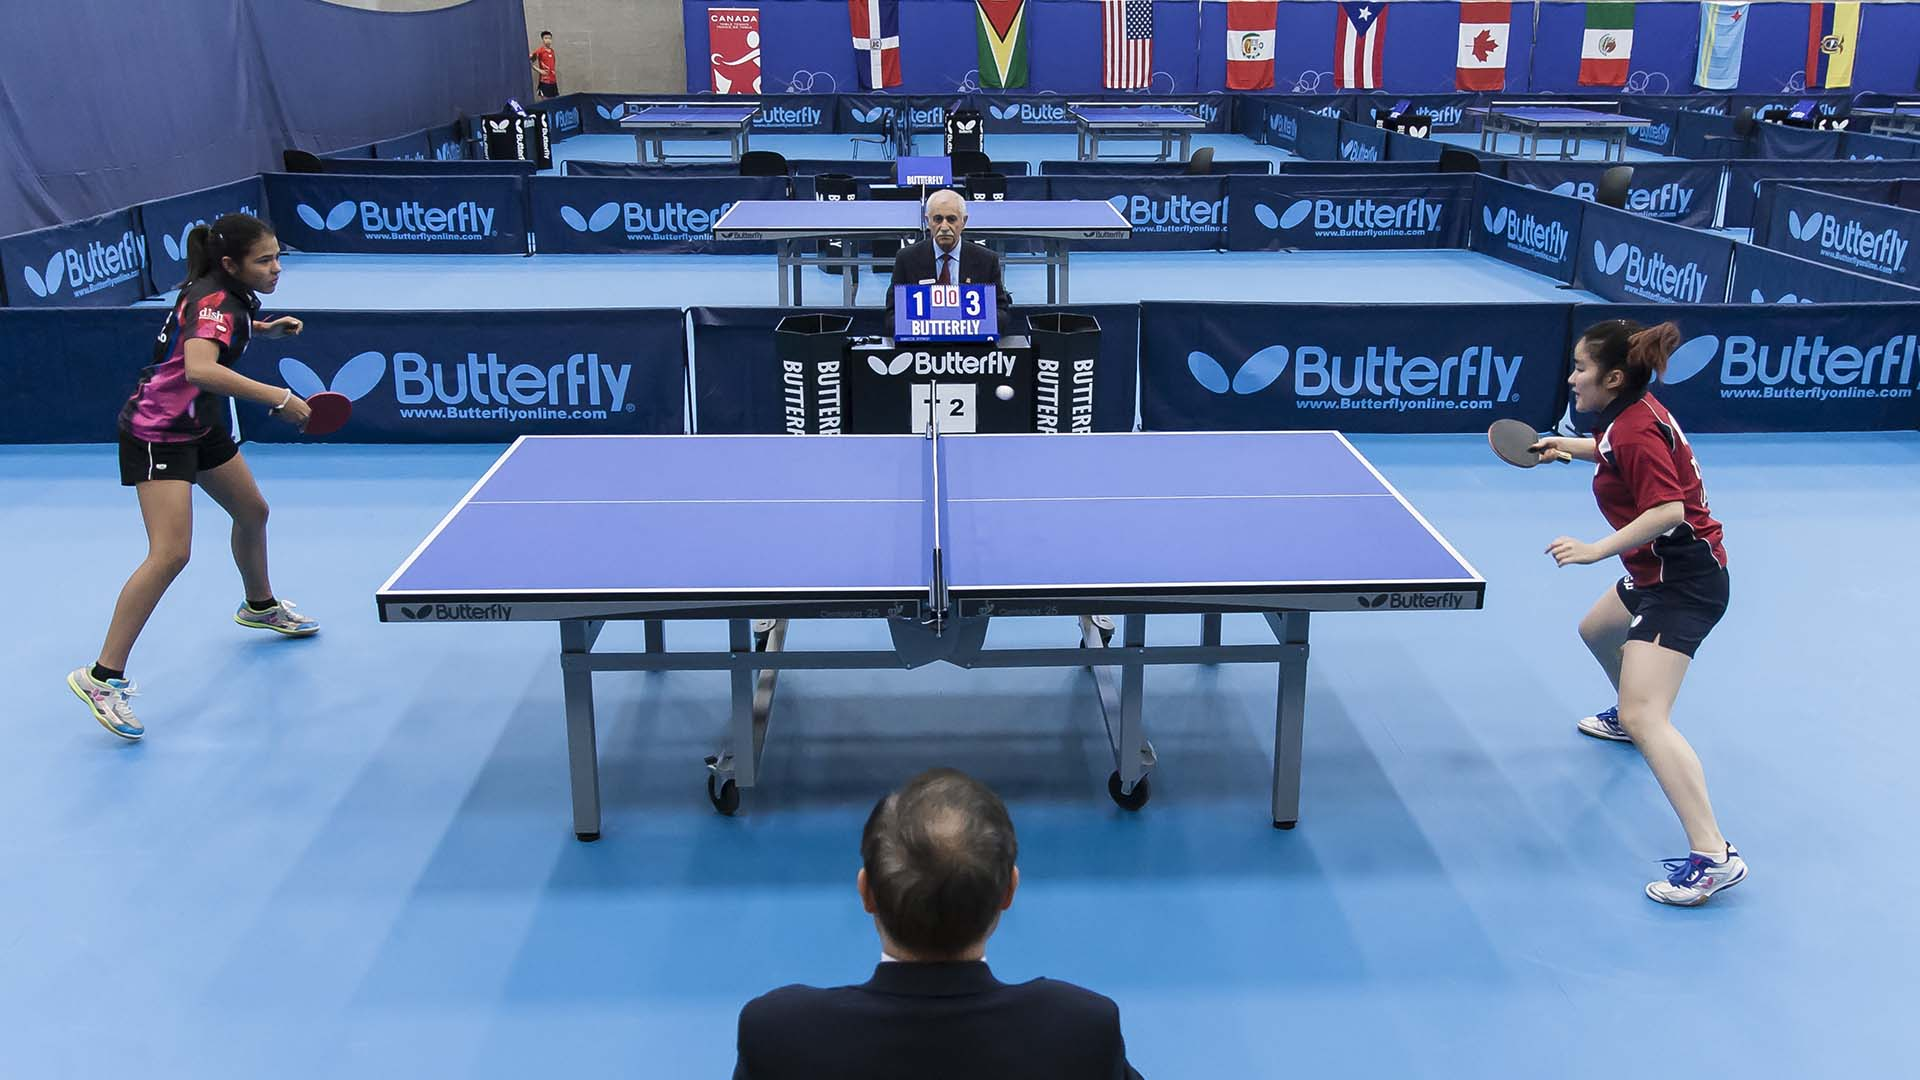 Invitation To Umpire In Argentina Butterfly Online